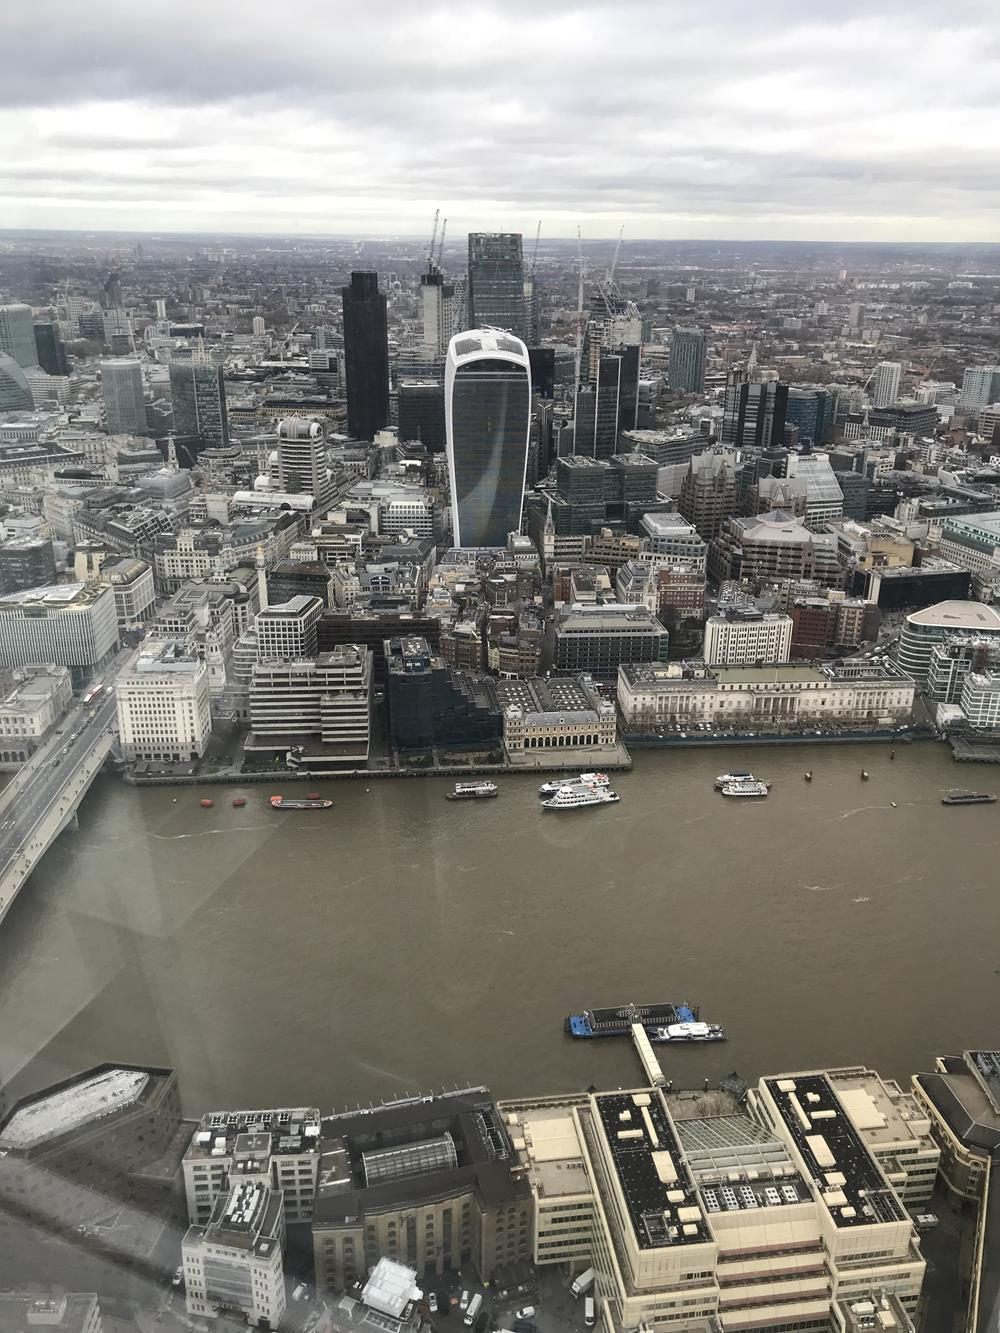 View from the Shard to the north including the City and river in the foreground